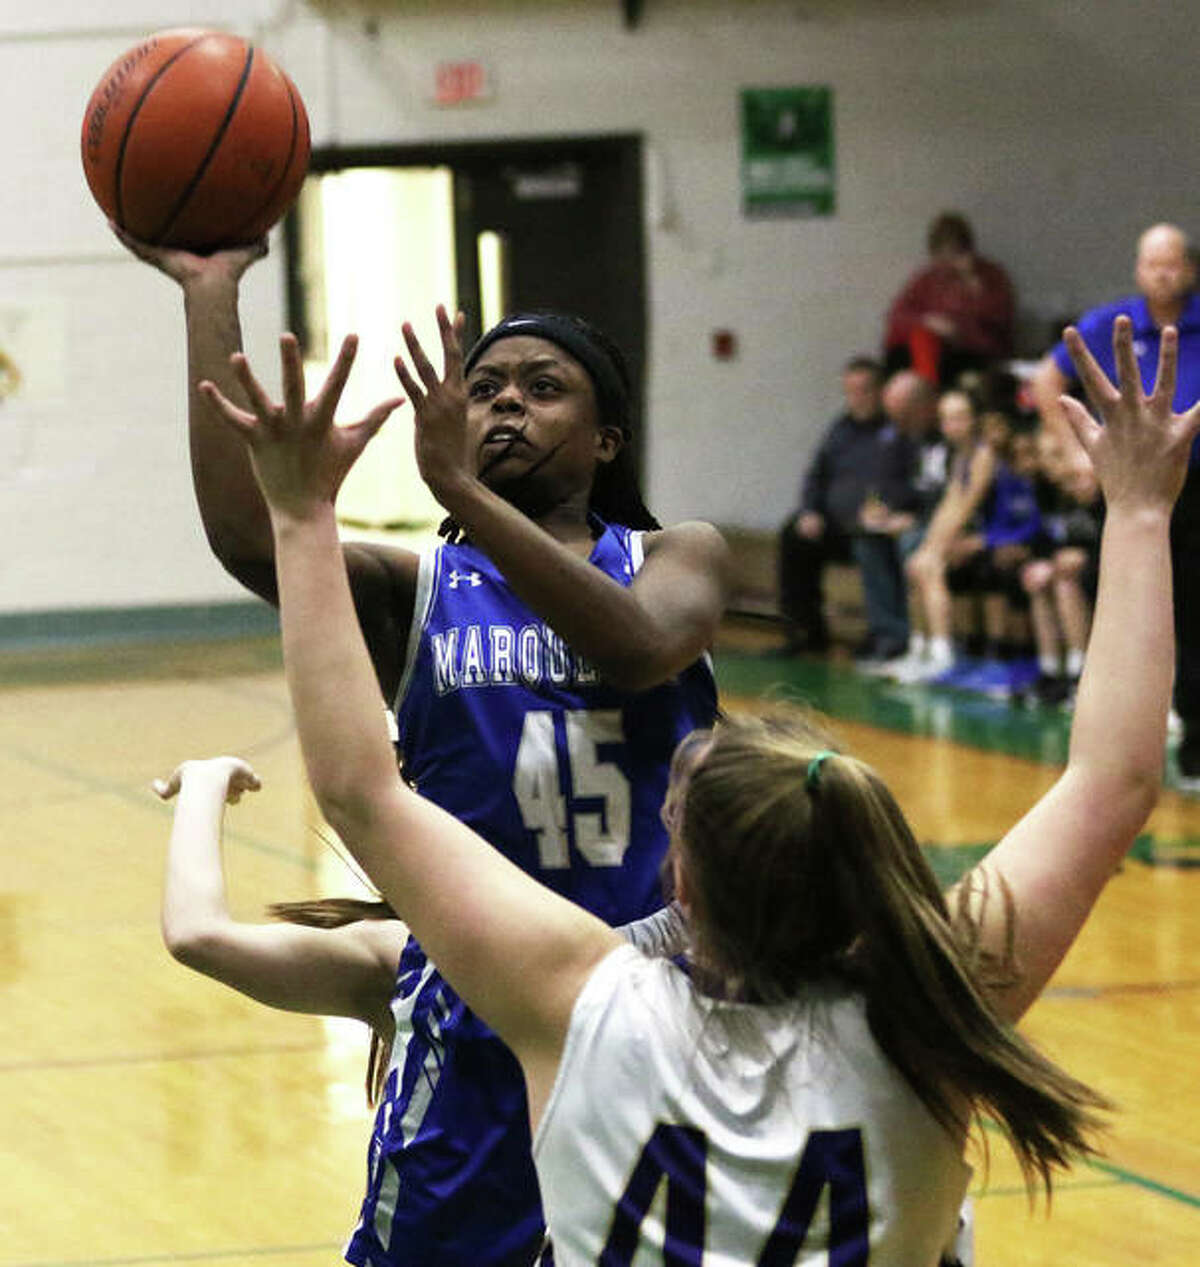 Marquette Catholic's Adrenna Snipes puts up a shot in the lane over Jacksonville Routt's Bella McCartney (44) in the first quarter Thursday night in the semifinals of the Carrollton Tourney.